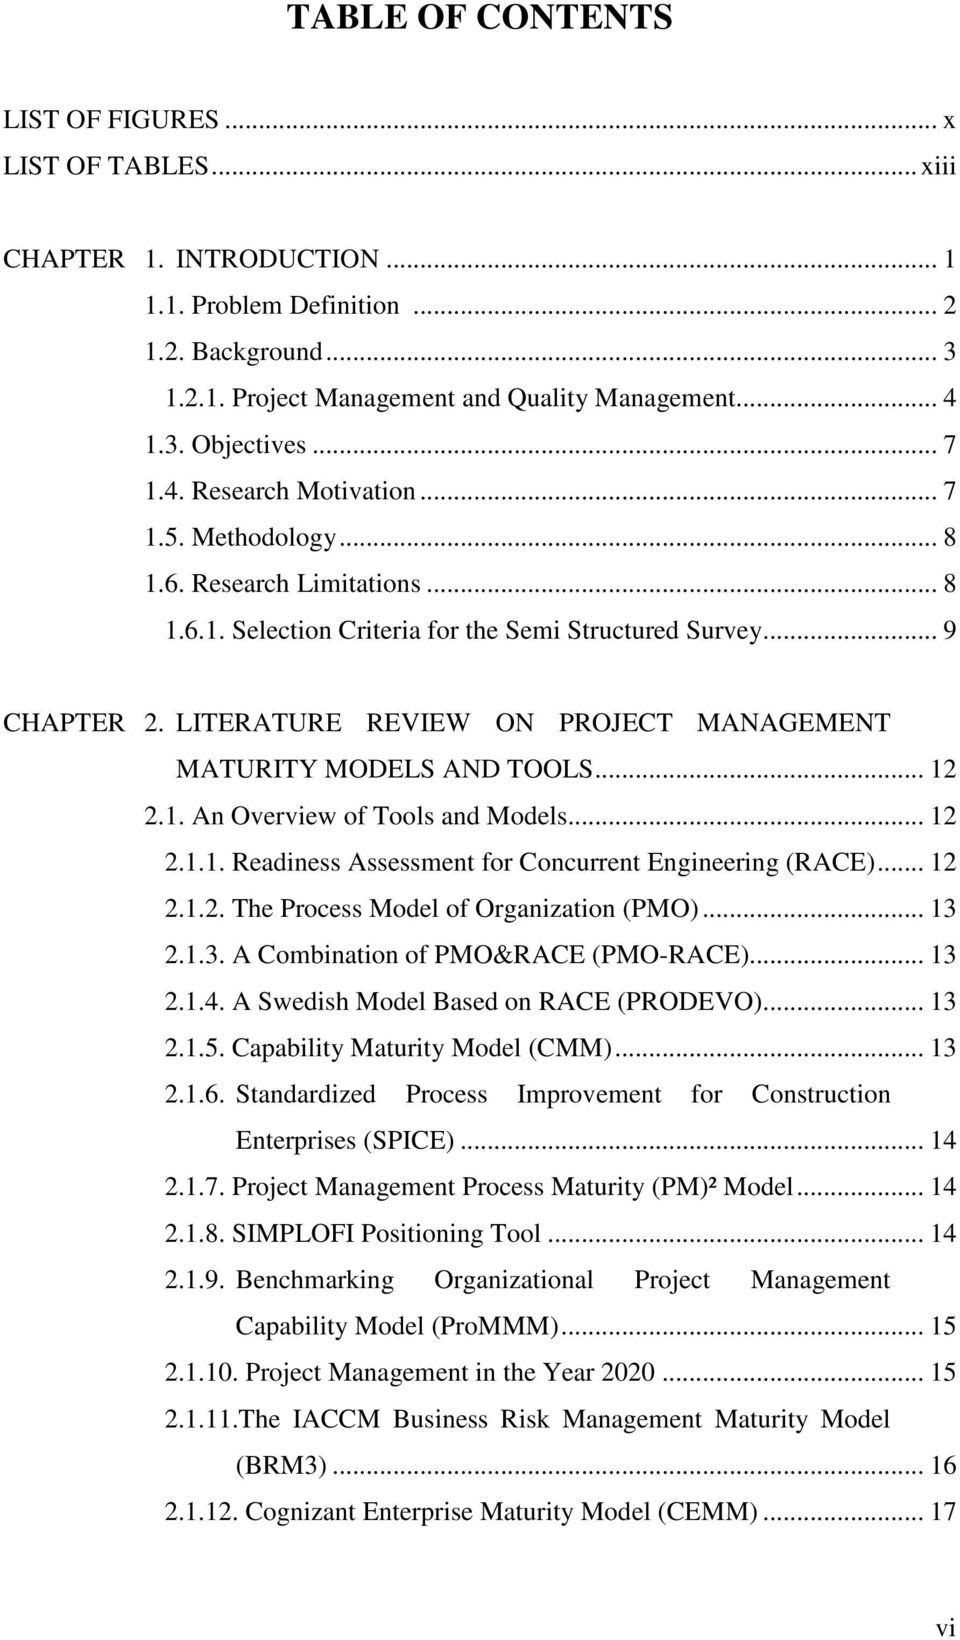 LITERATURE REVIEW ON PROJECT MANAGEMENT MATURITY MODELS AND TOOLS... 12 2.1. An Overview of Tools and Models... 12 2.1.1. Readiness Assessment for Concurrent Engineering (RACE)... 12 2.1.2. The Process Model of Organization (PMO).